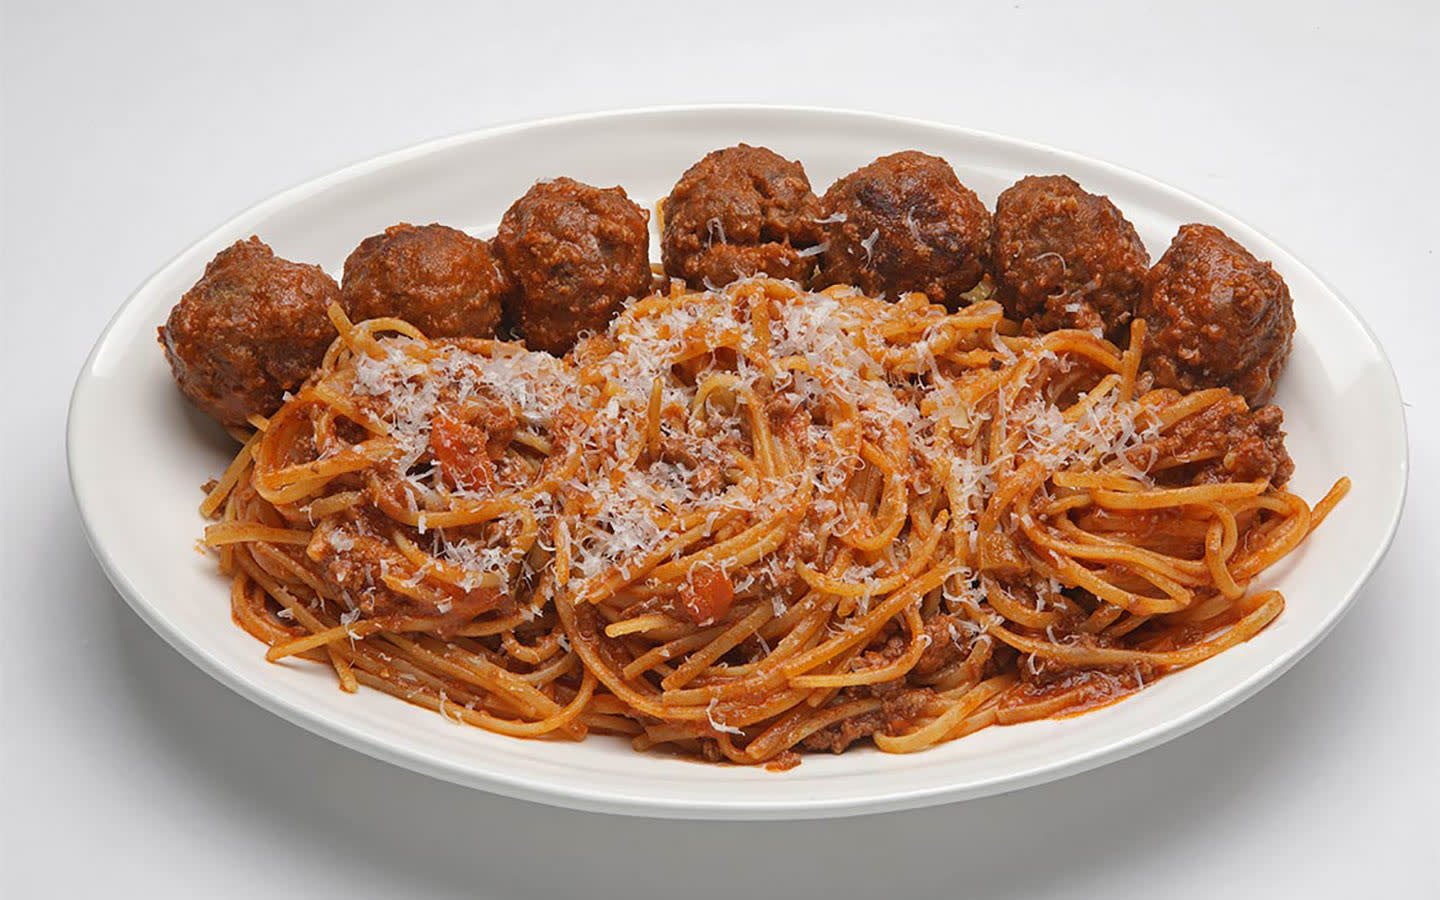 Sette Cafe Spaghetti and Meatballs